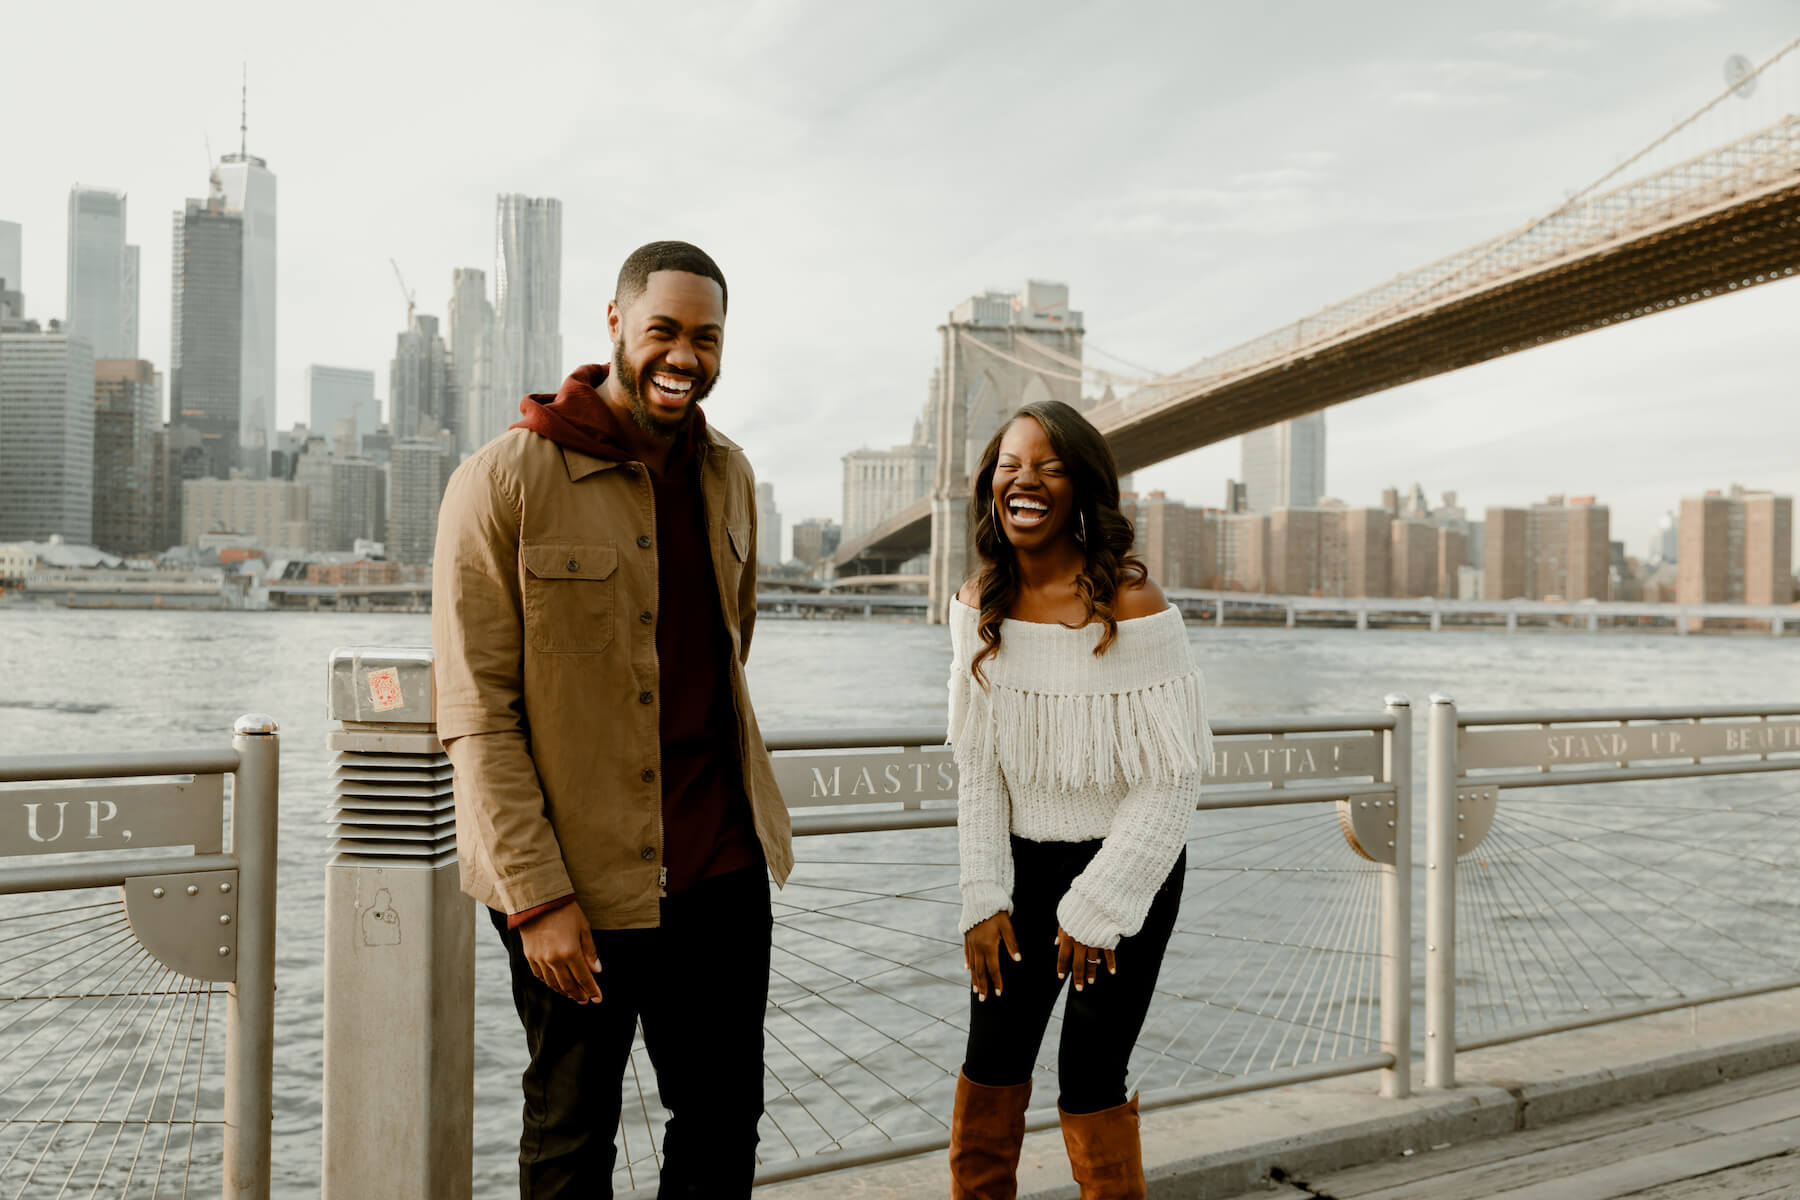 couple on a pier in NYC with the bridge and city in the background in New York City, New York